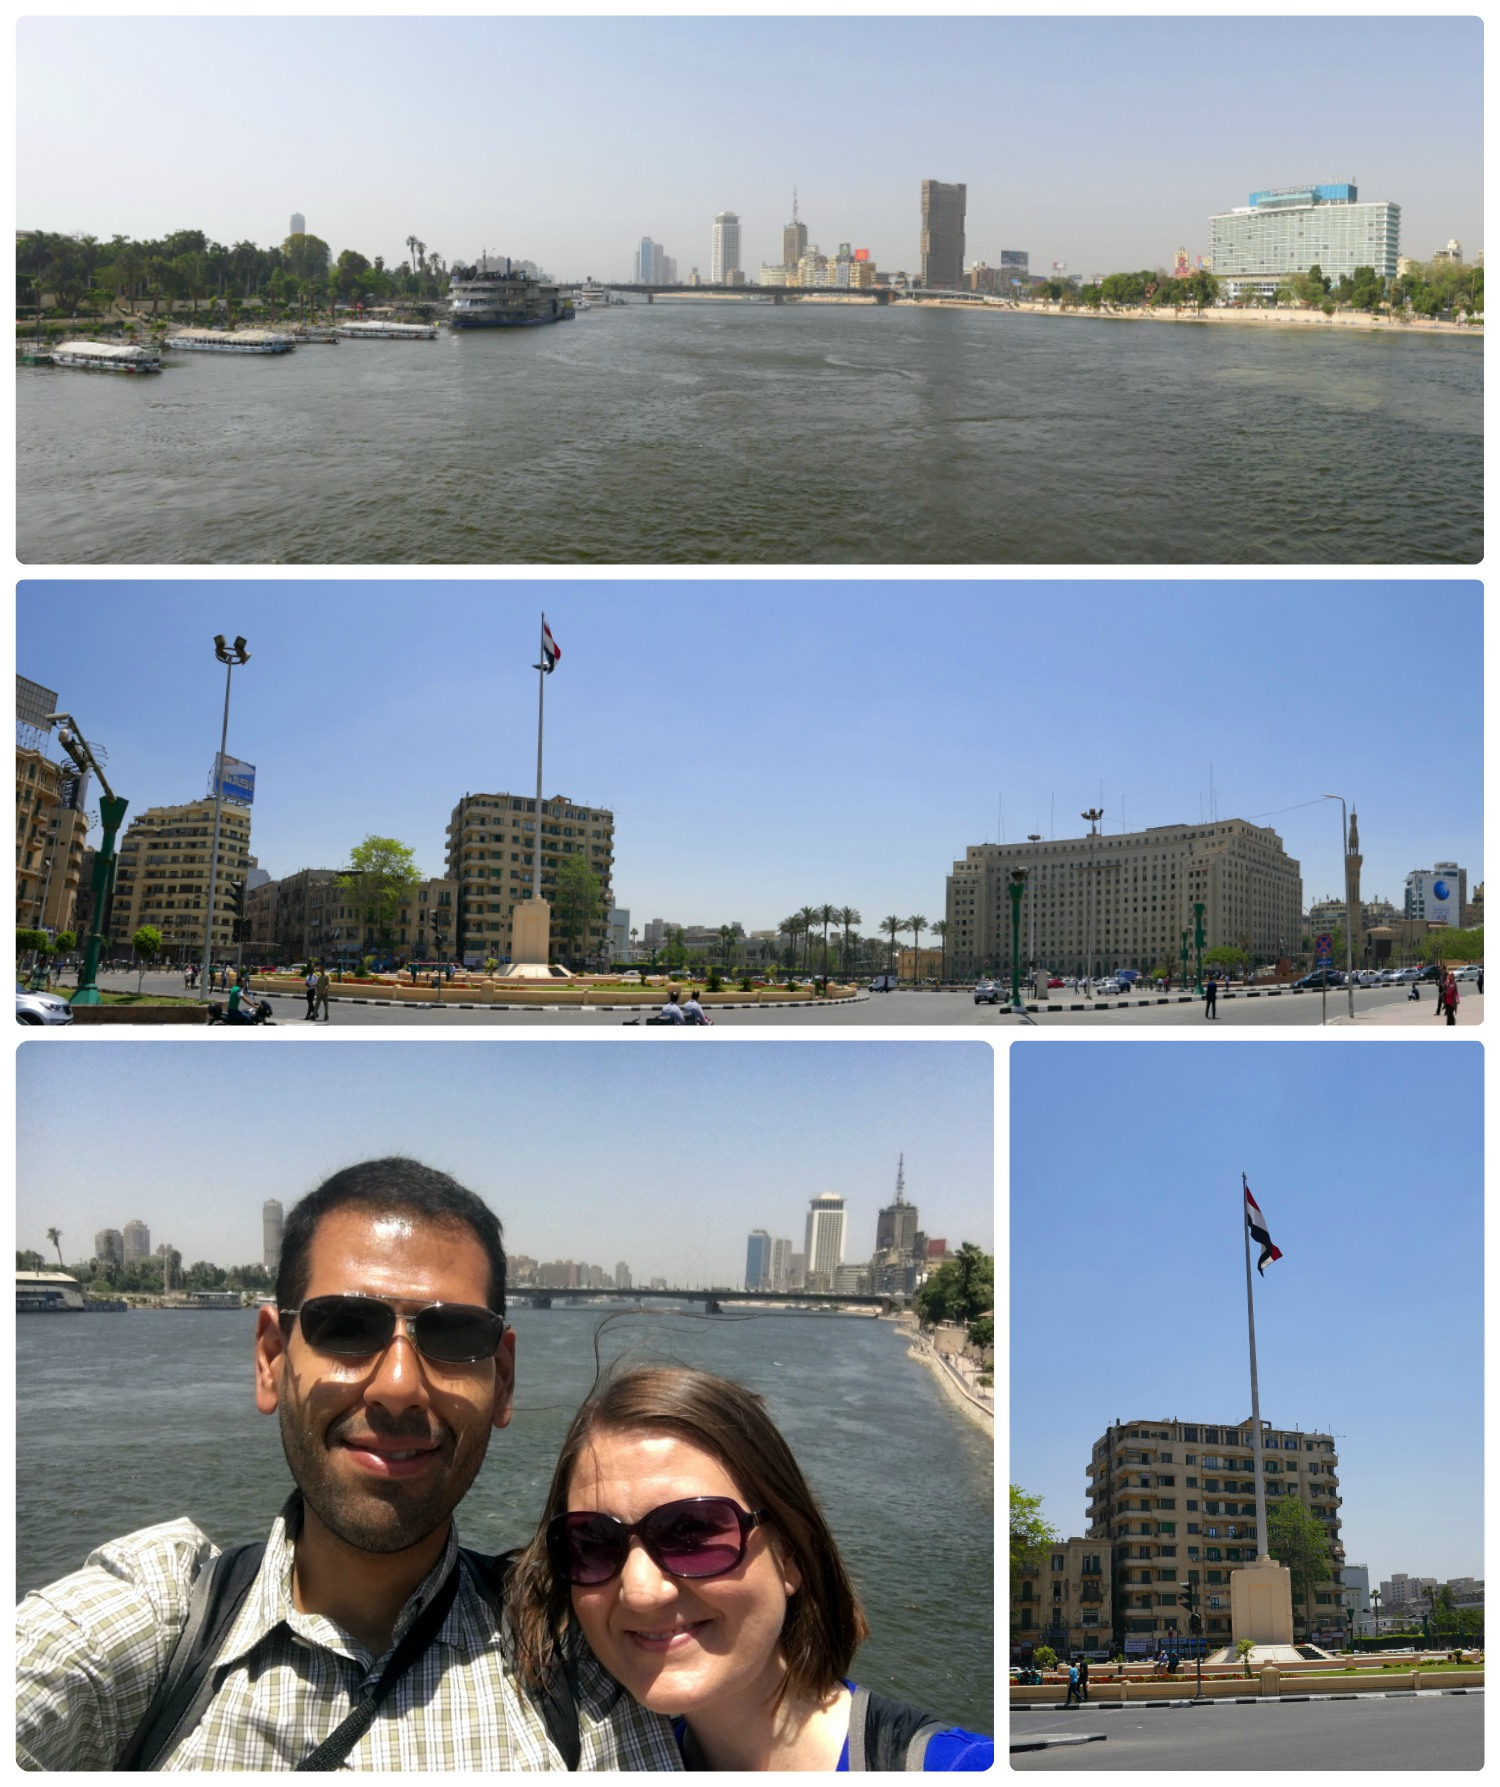 Clockwise (from the top): View of the Nile River from the Kasr El Nil Bridge, a panoramic view of Tahrir Square, the Egyptian flag in the center of Tahrir square, us on the bridge over the Nile River.